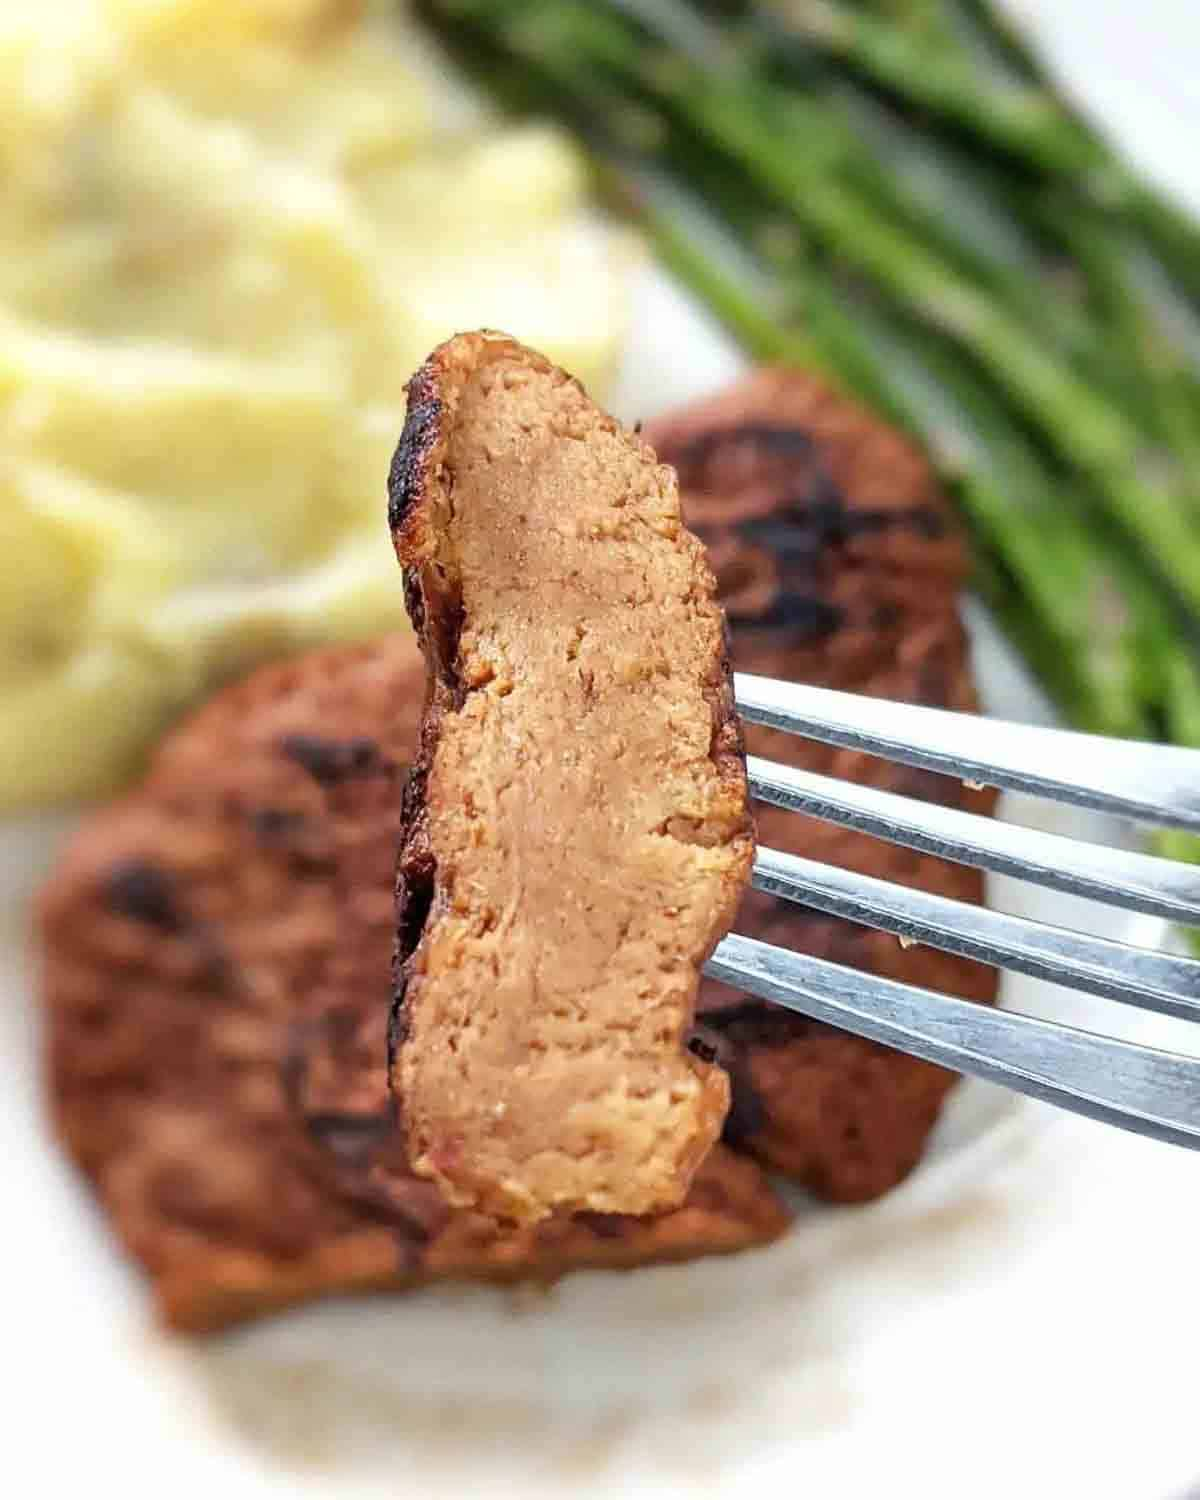 Fork holding a slice of vegan steak. There is a plate with steak, mashed potatoes and asparagus in the background.